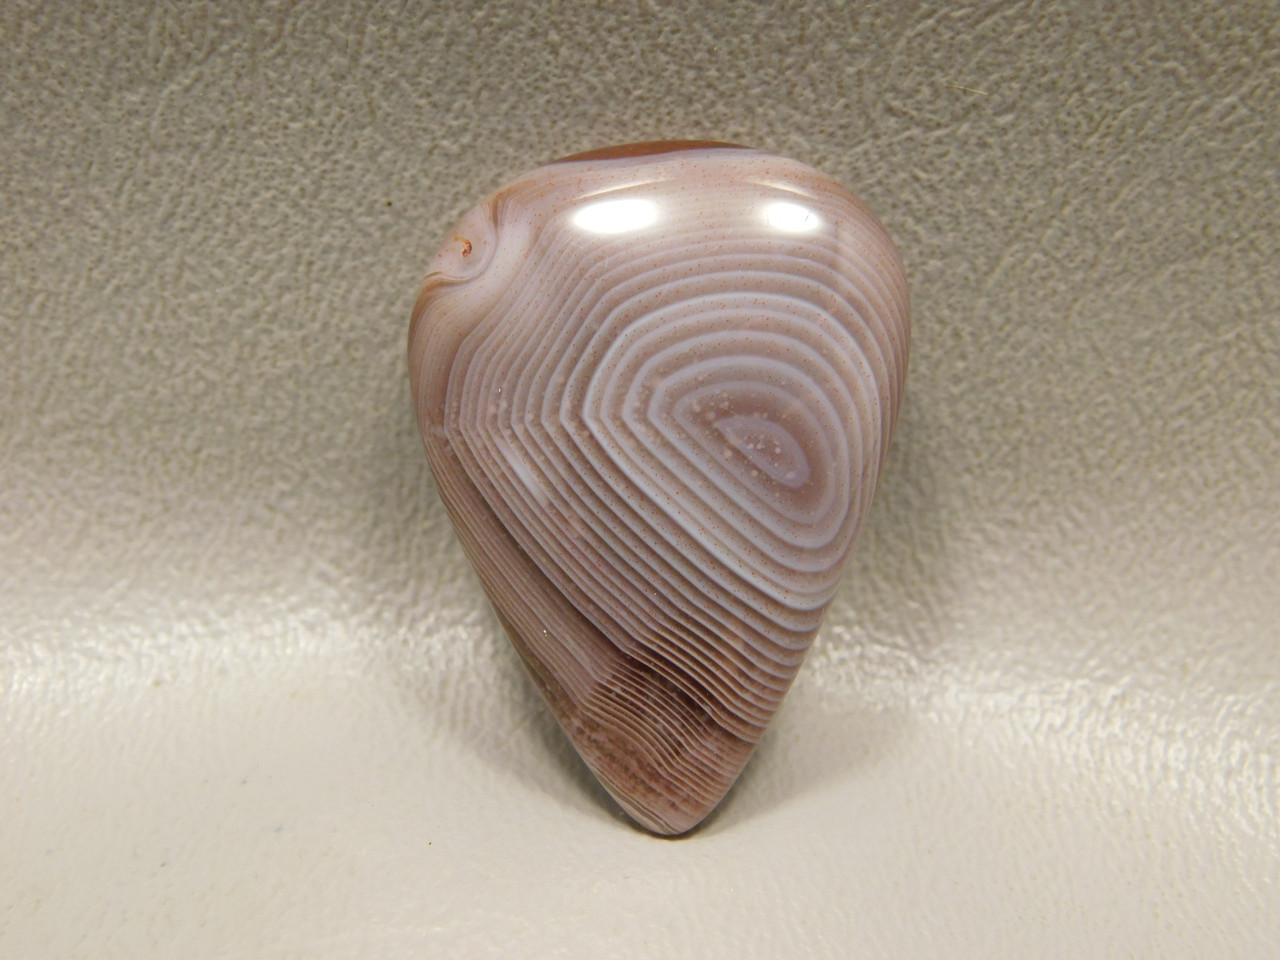 Banded Botswana Agate Loose Stone Cabochon For Jewelry Making #1